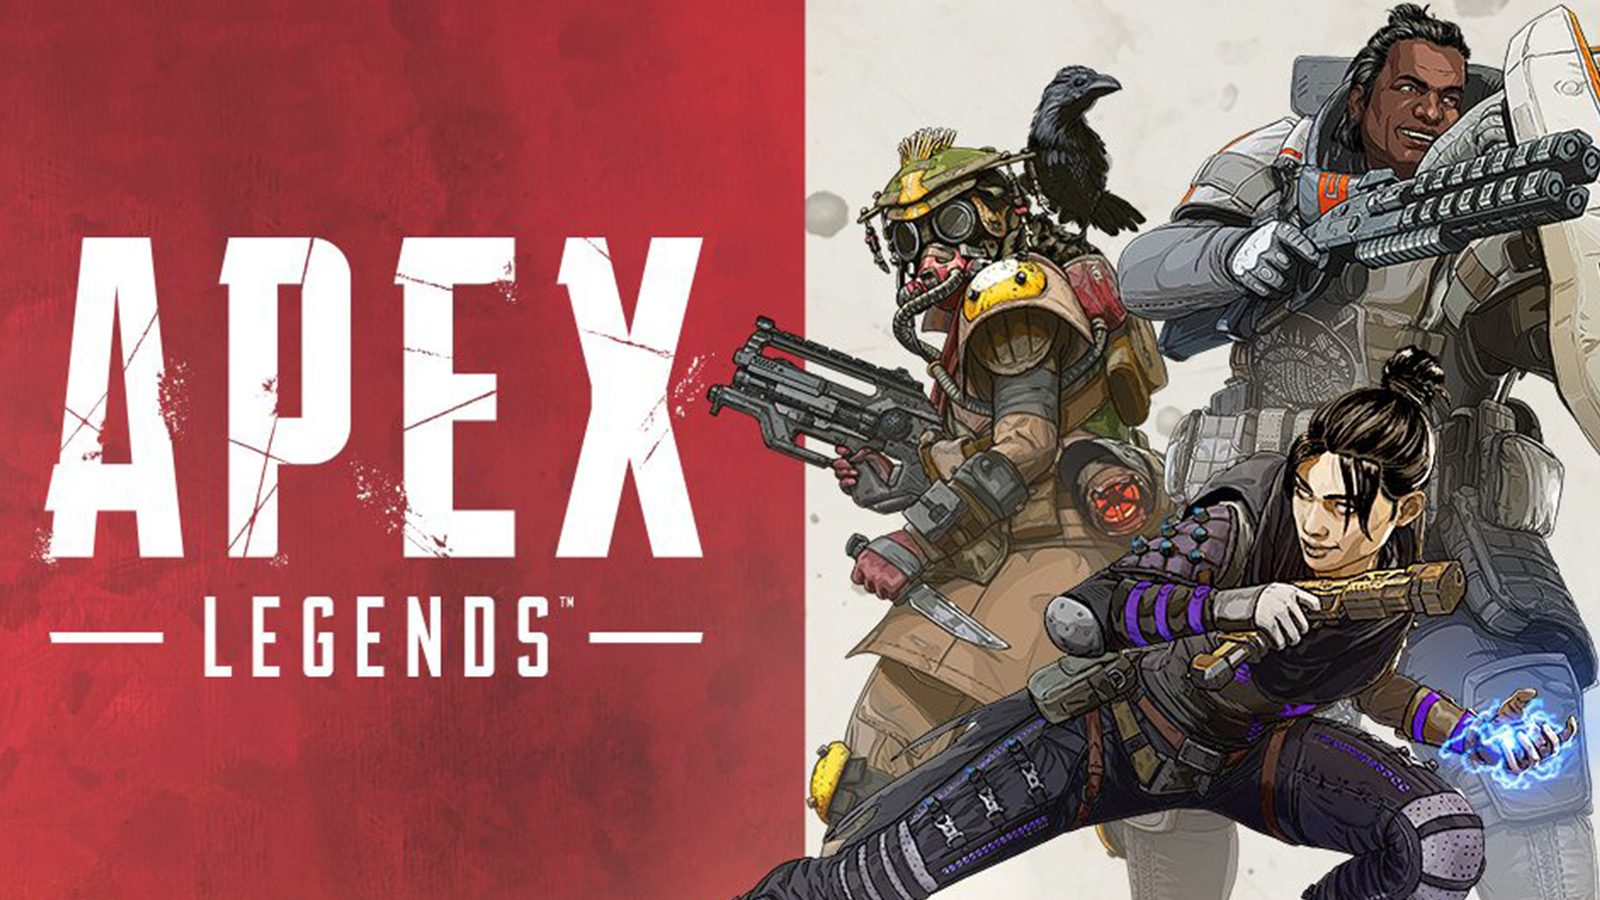 apex legends ot 20 urovnya [origin] + otvet 49 rur